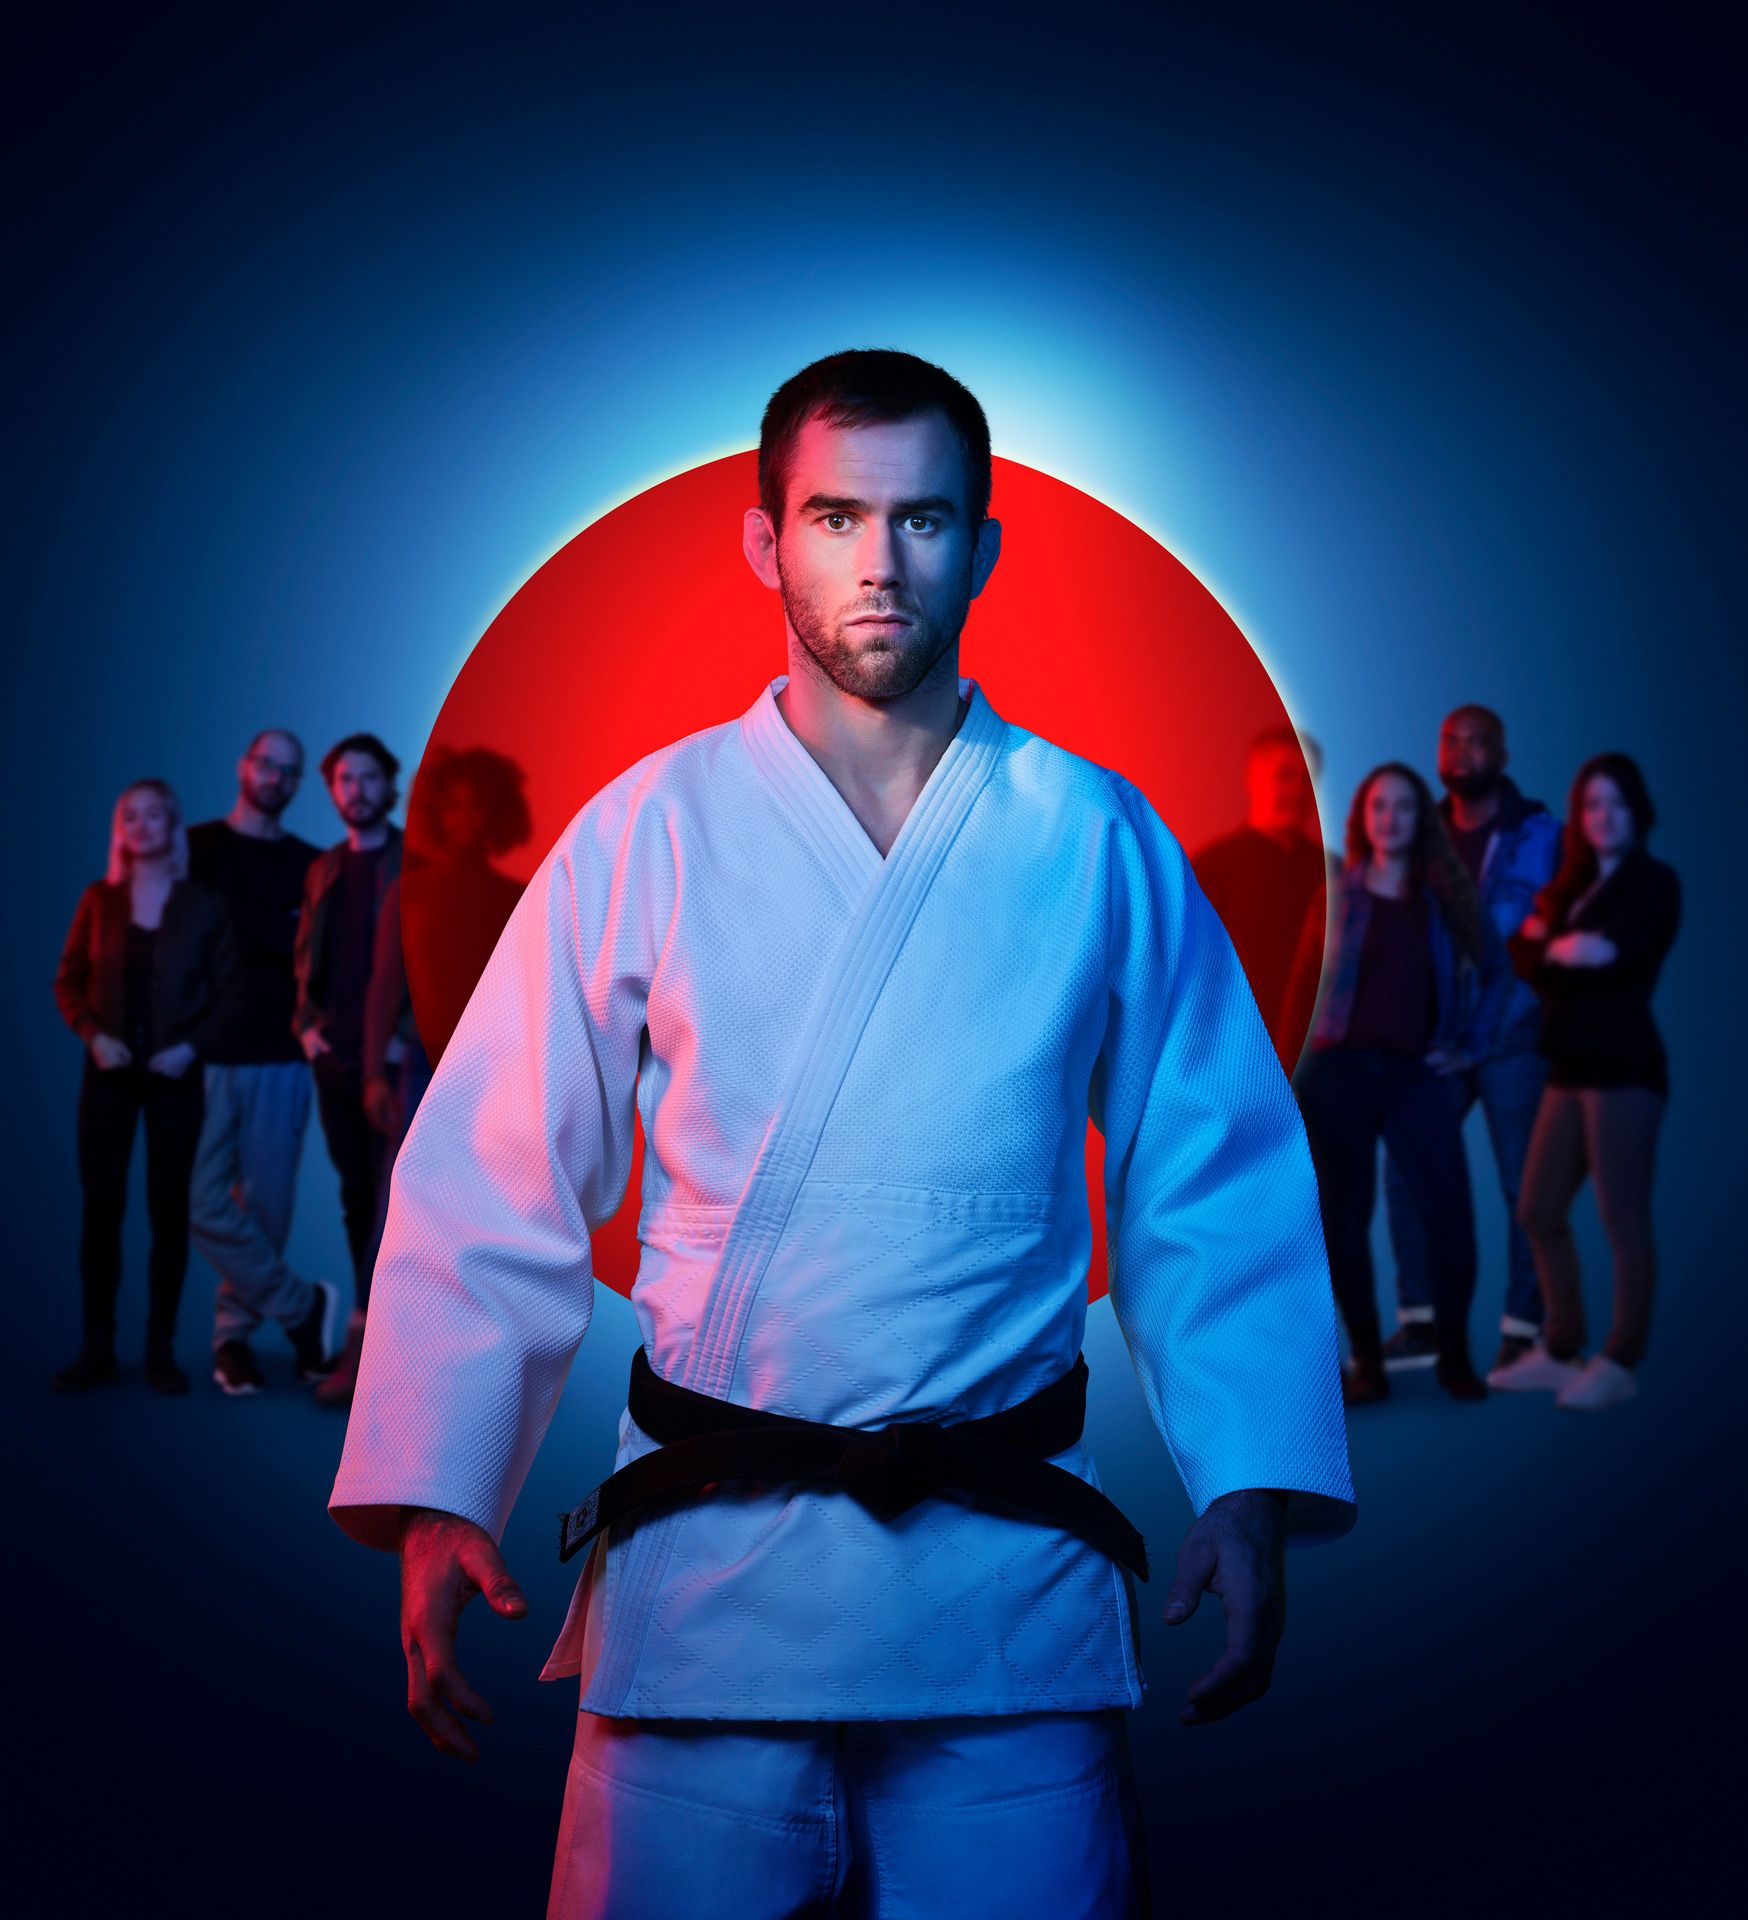 Martial arts olympic athlete posing in front of a crowd with blue lights and a red dot.